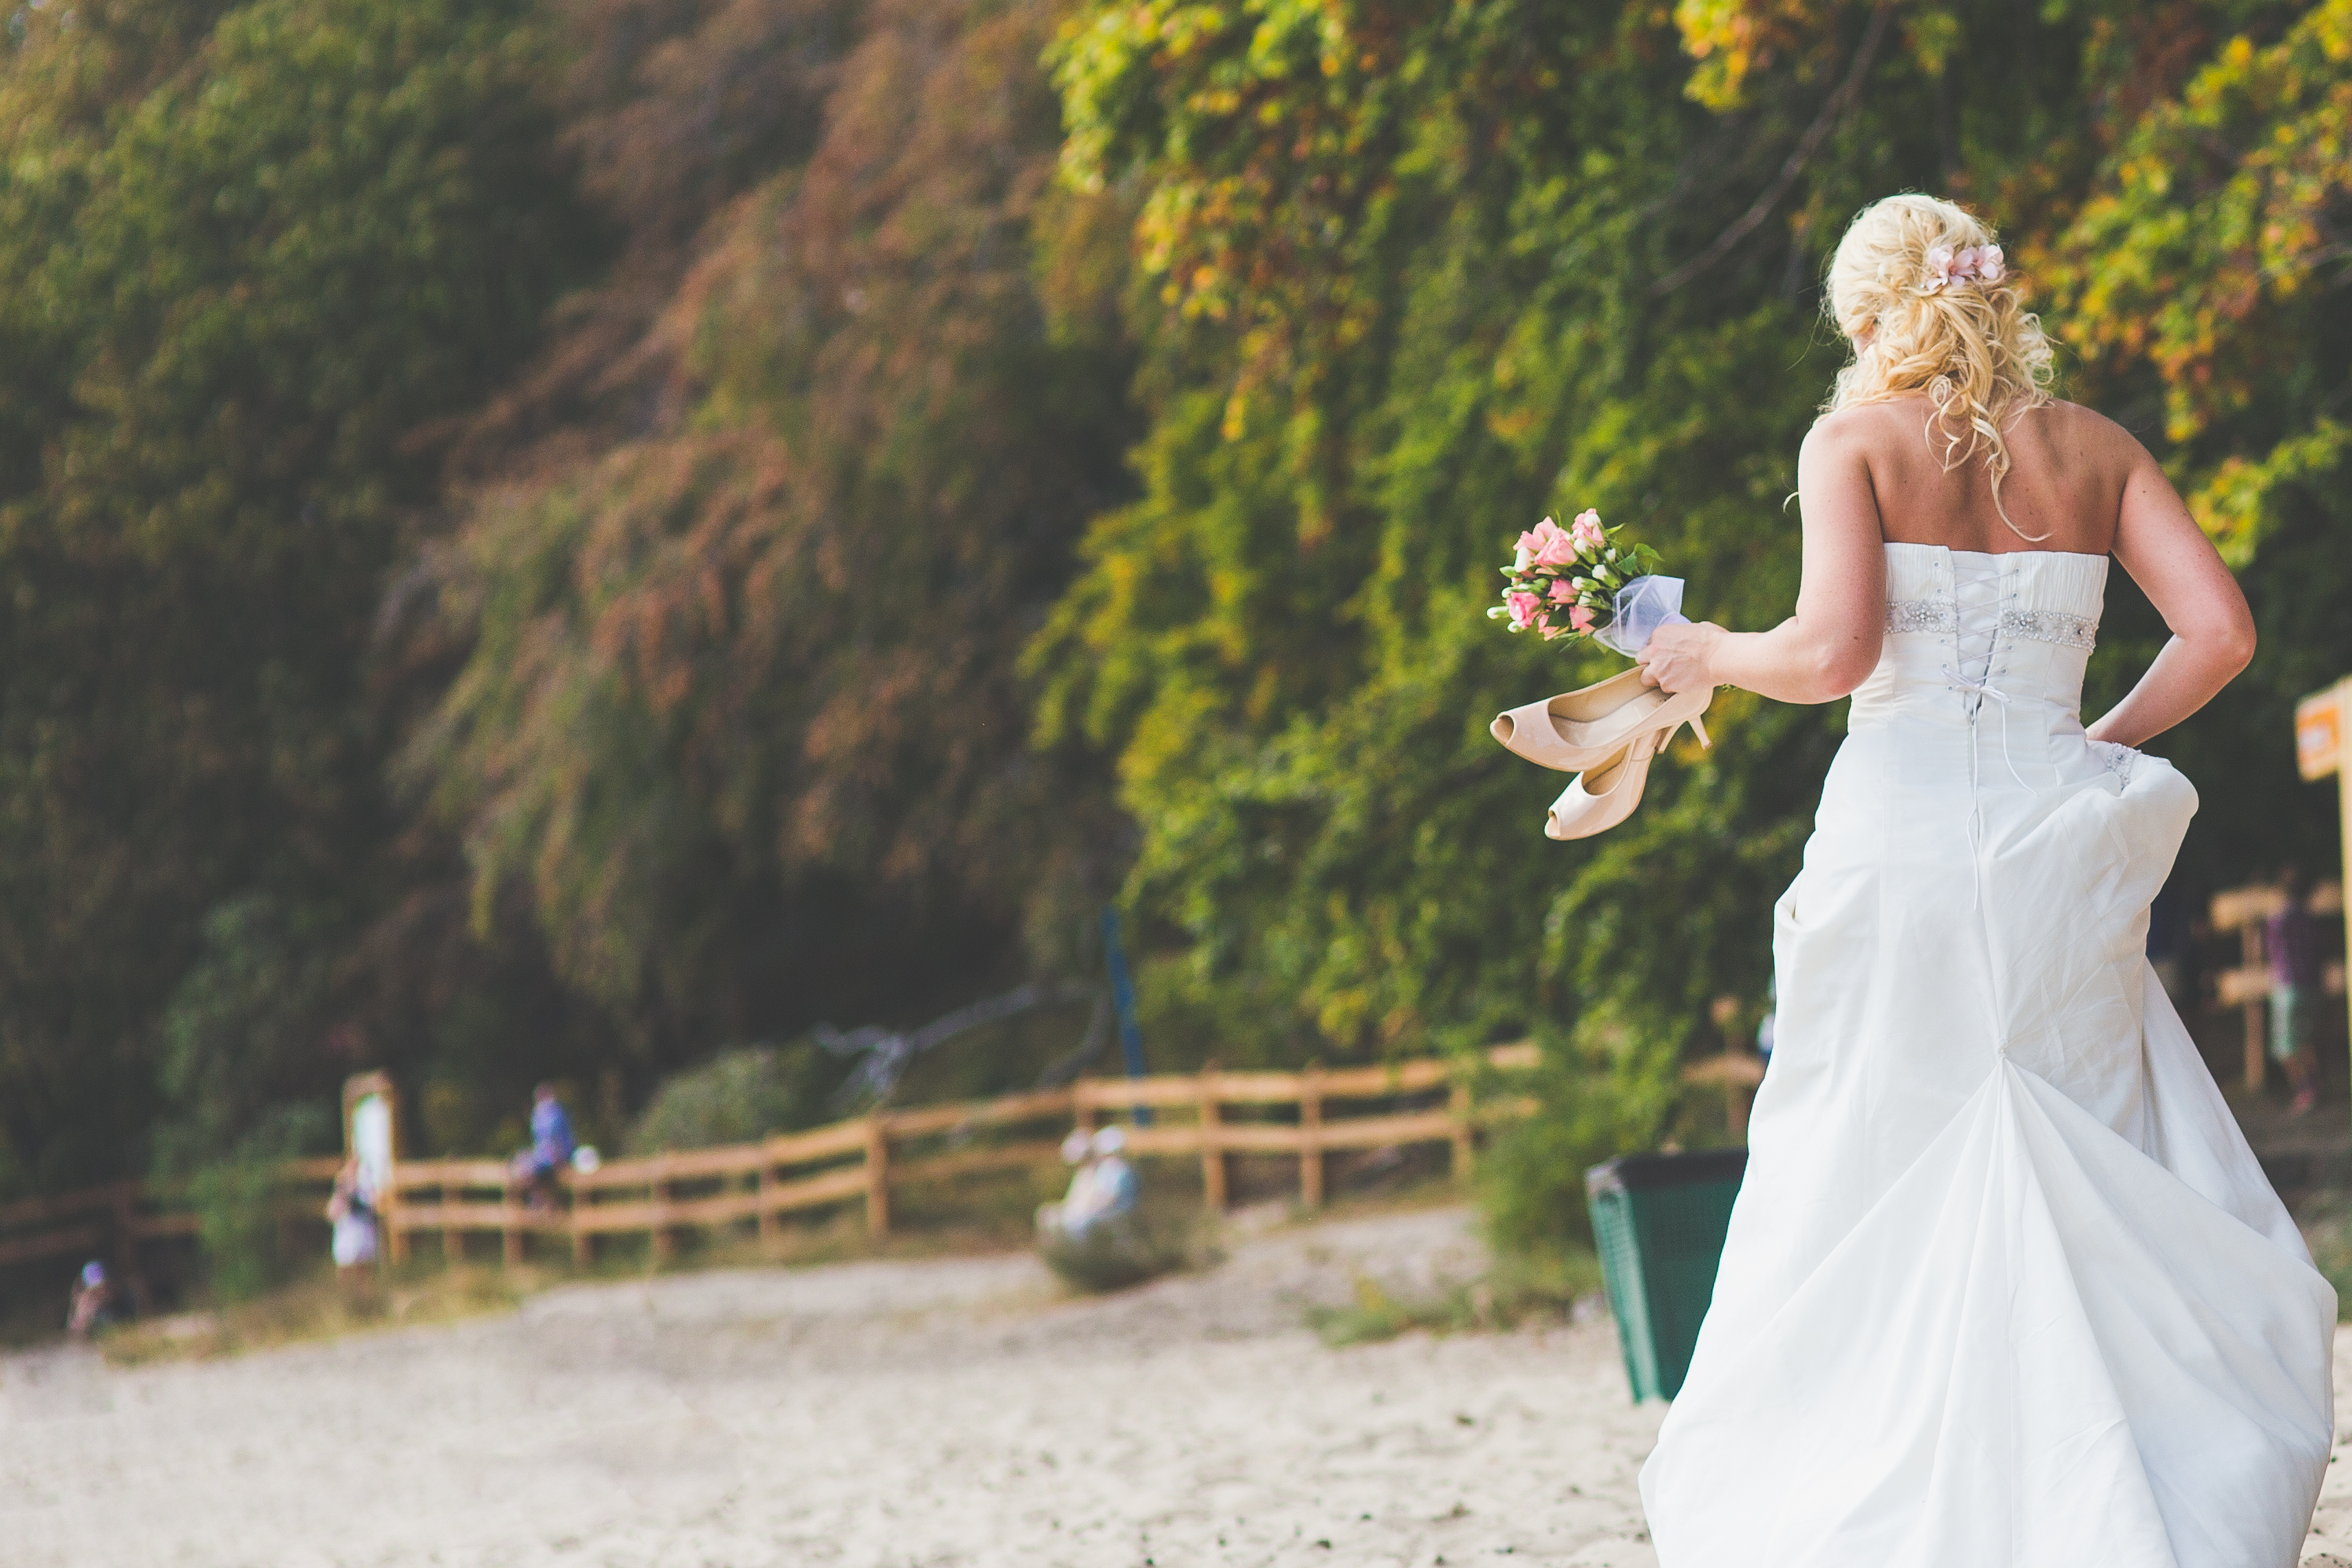 kaboompics.com_Bride walking alone with flowers and shoes